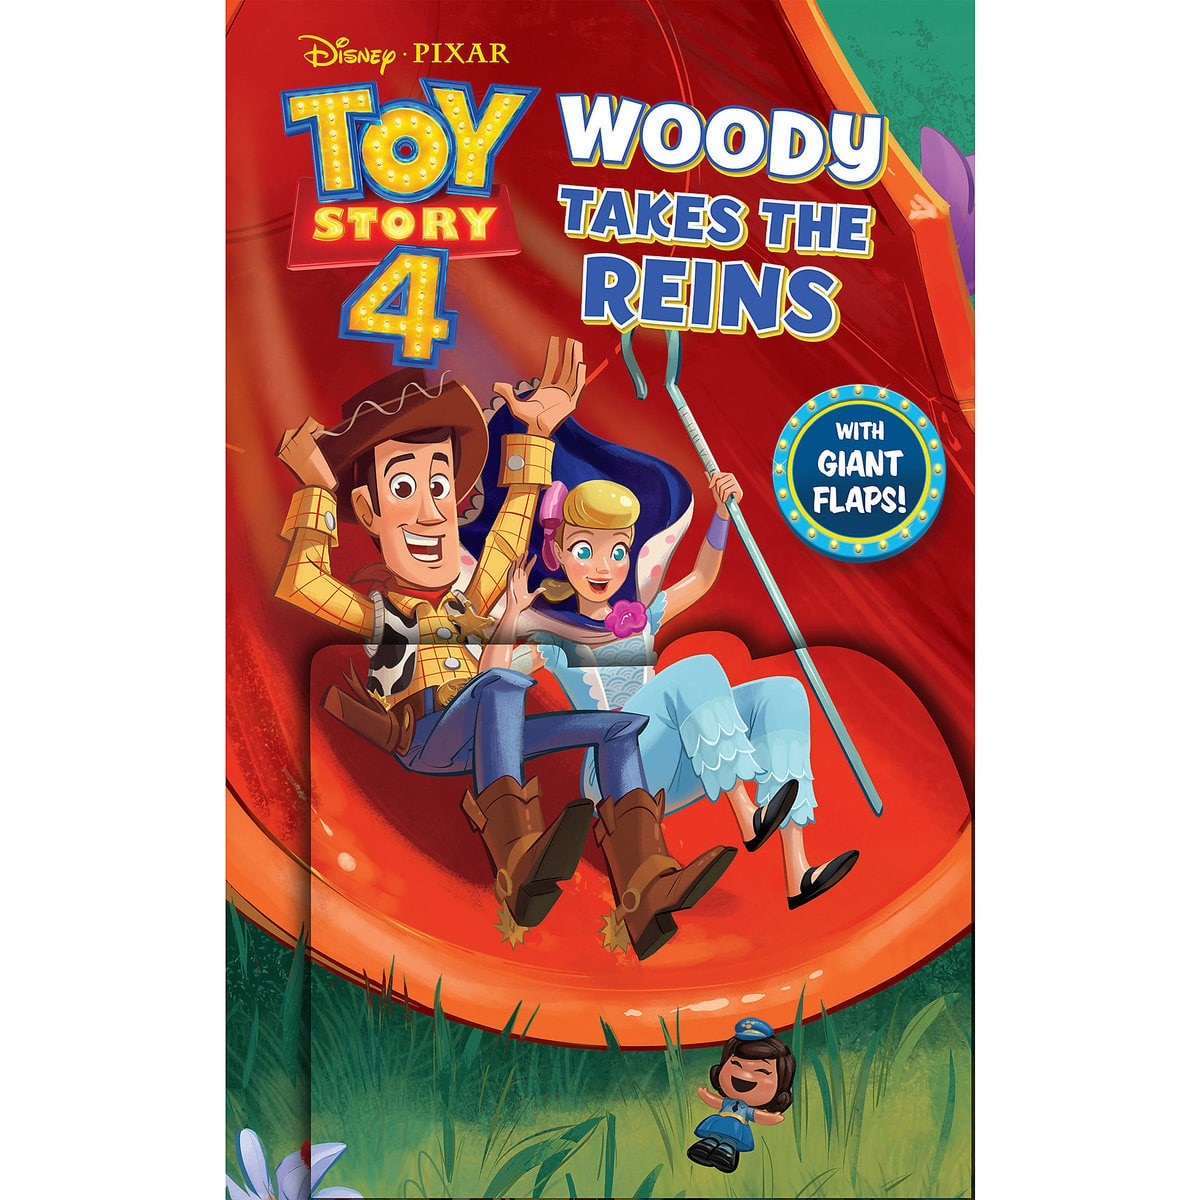 Toy Story 4: Woody Takes the Reins Book